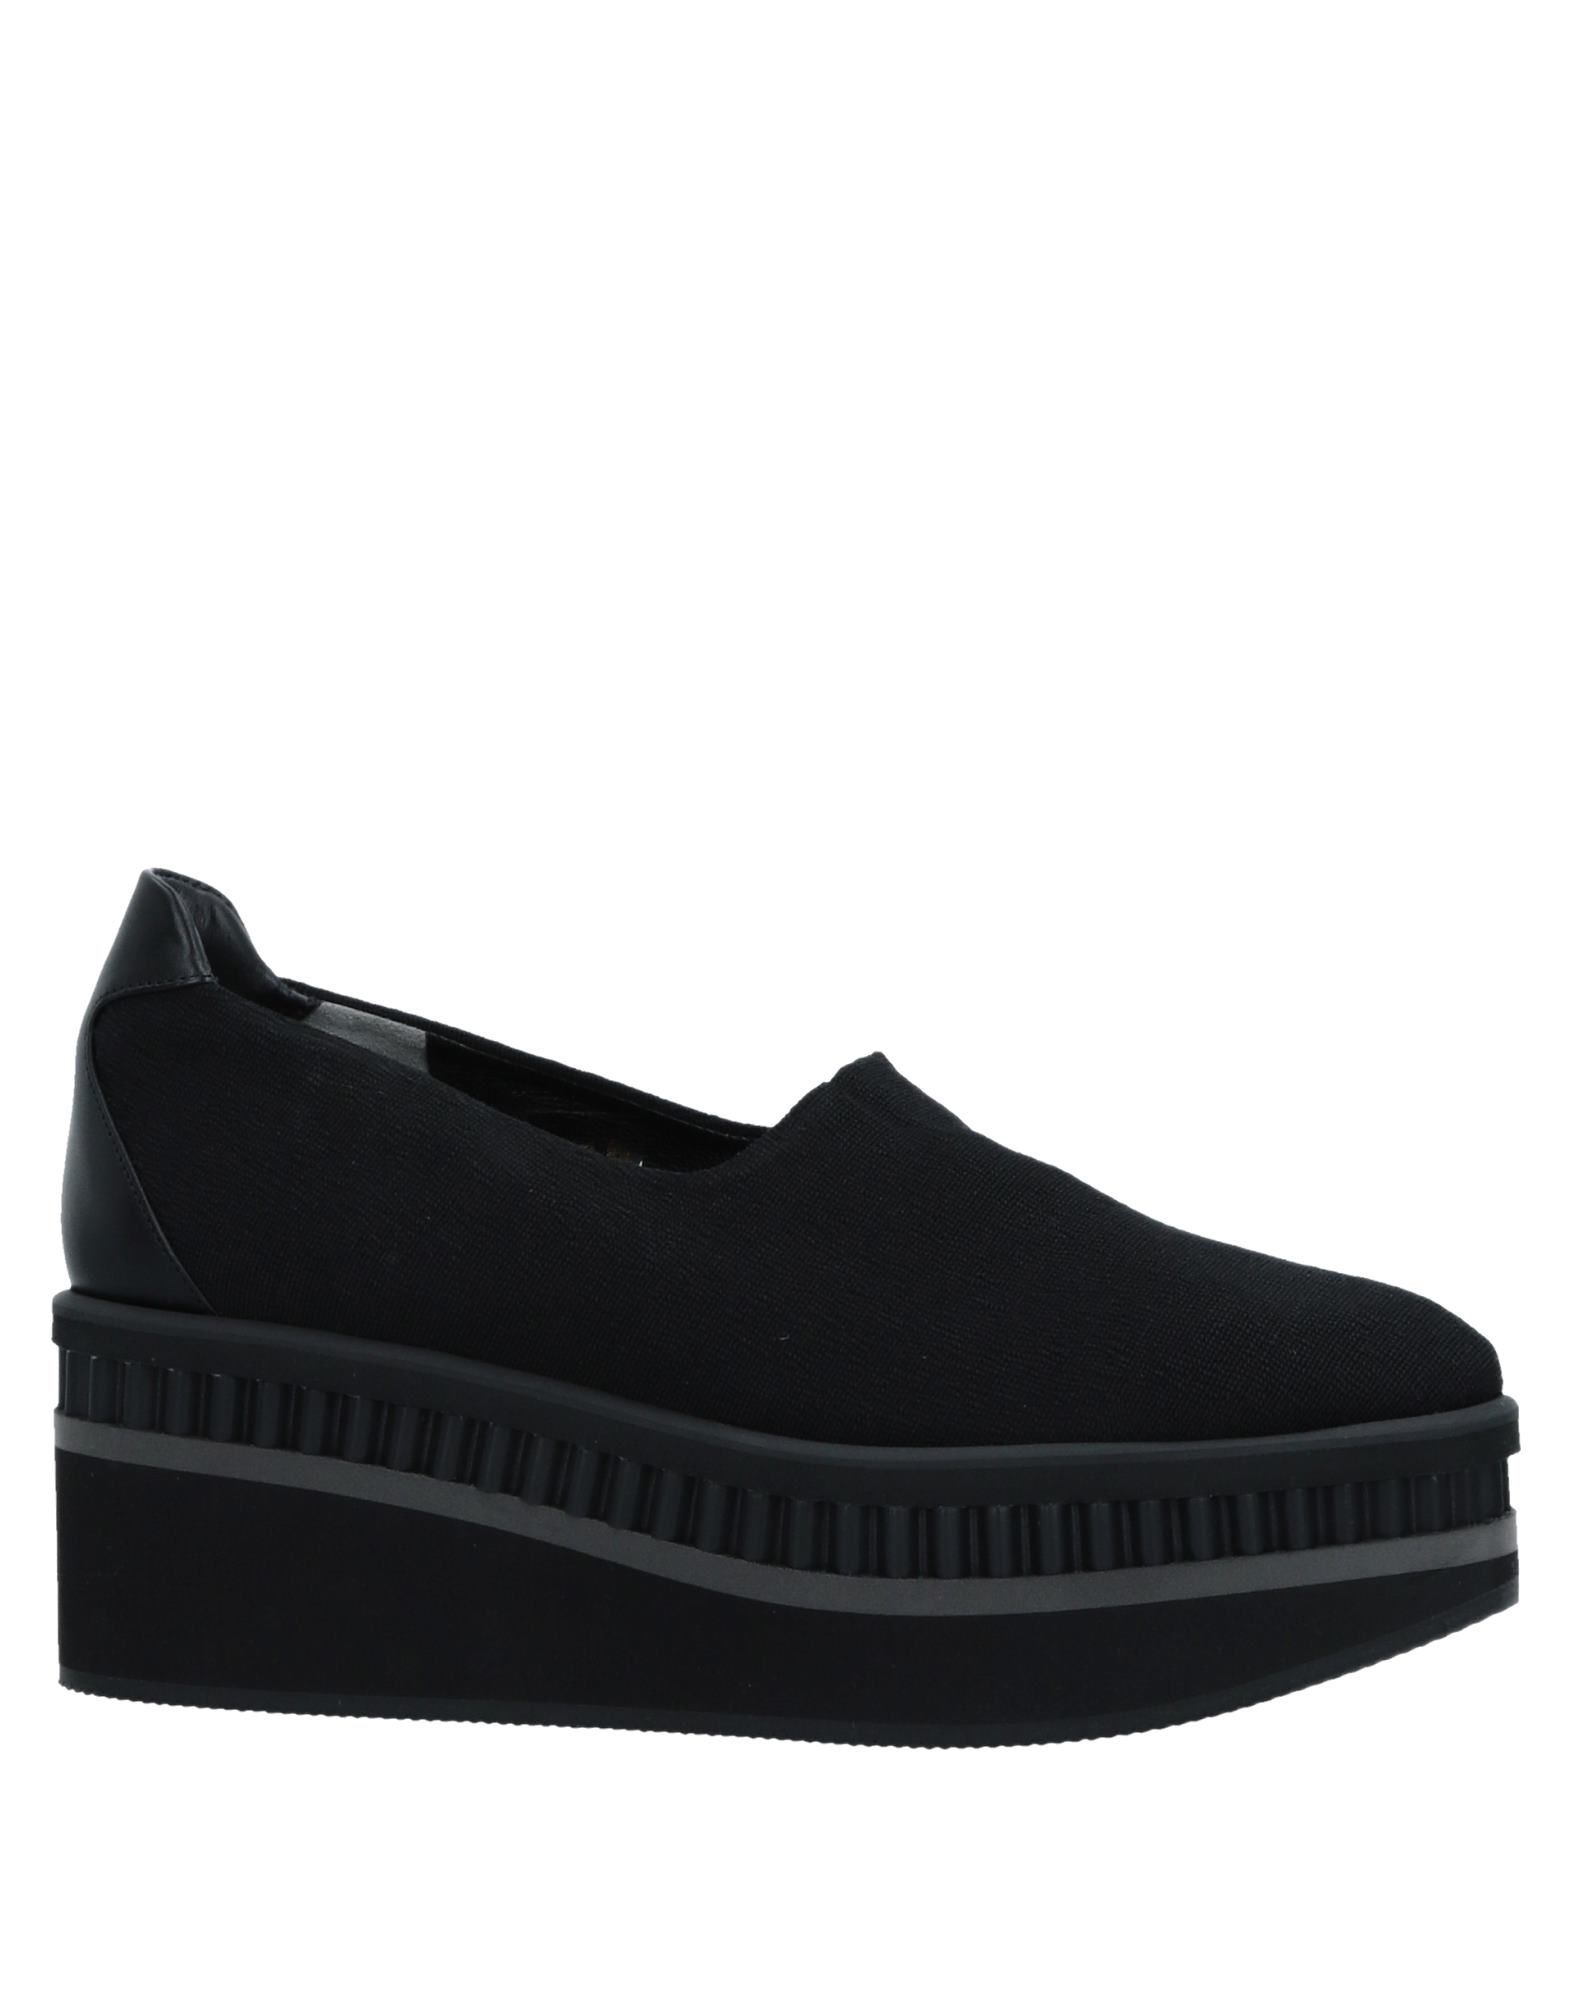 Sneakers Robert Clergerie Donna - 11522562WW